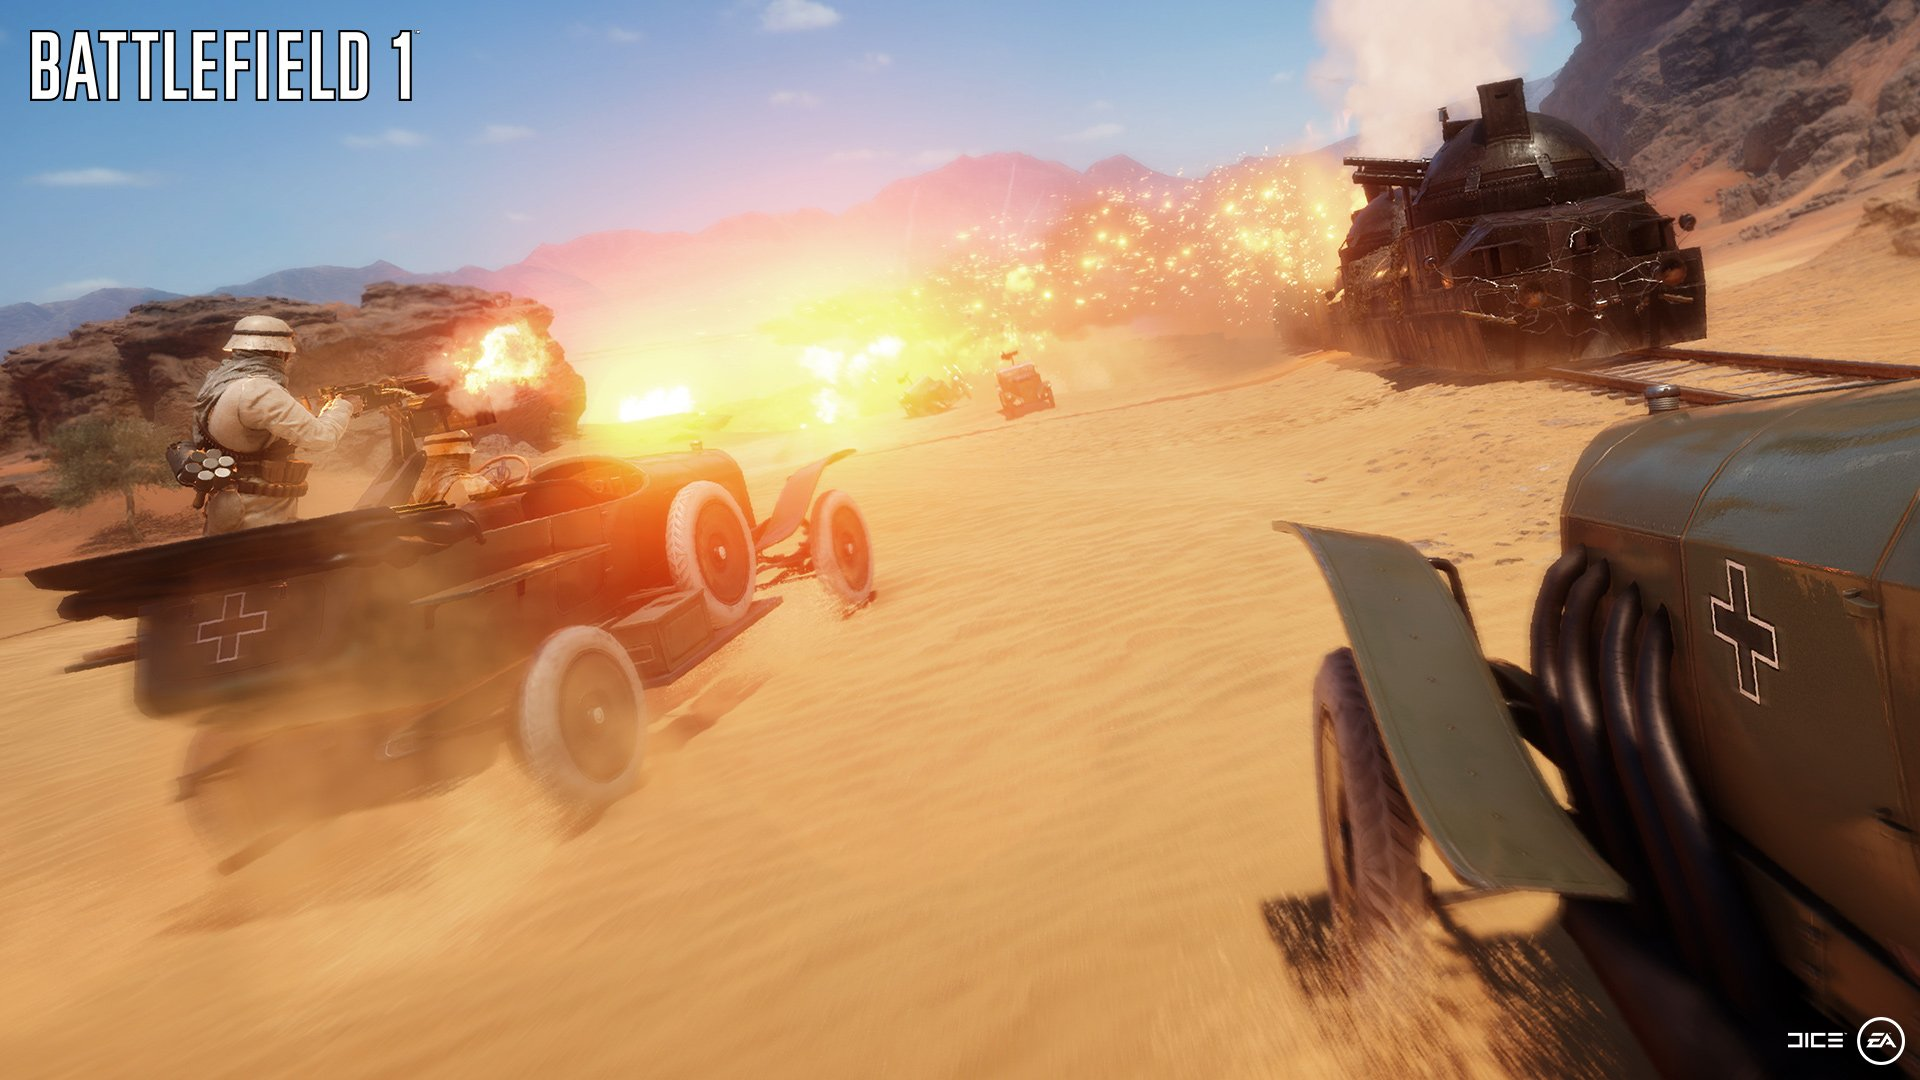 Battlefield 1 Heres A Look At 64 Player Multiplayer On The Sinai Map Shown At Gamescom 2016